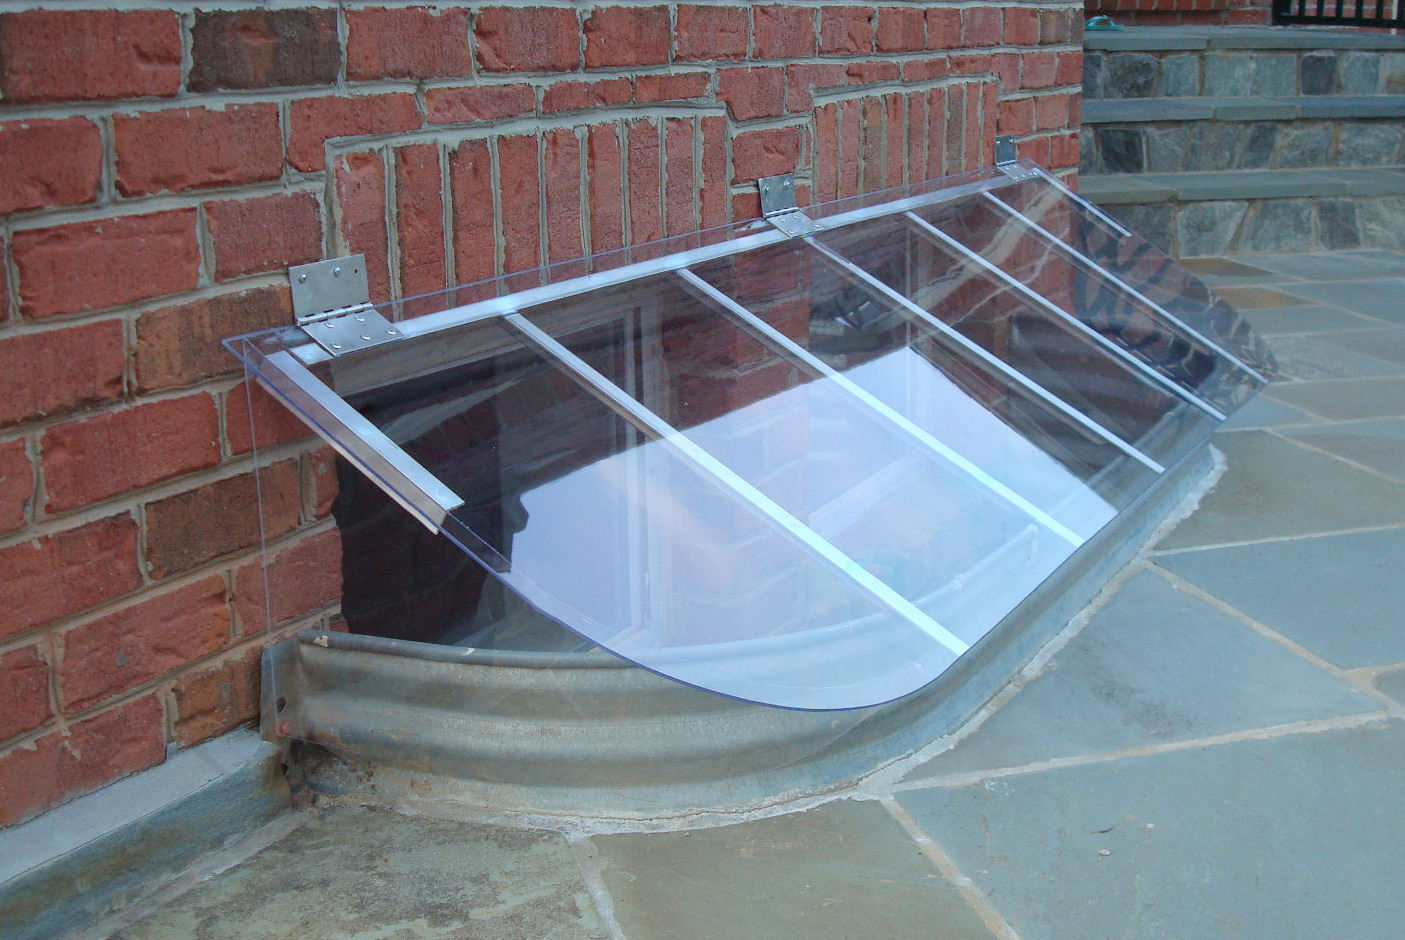 Slant Dome cover on metal window well